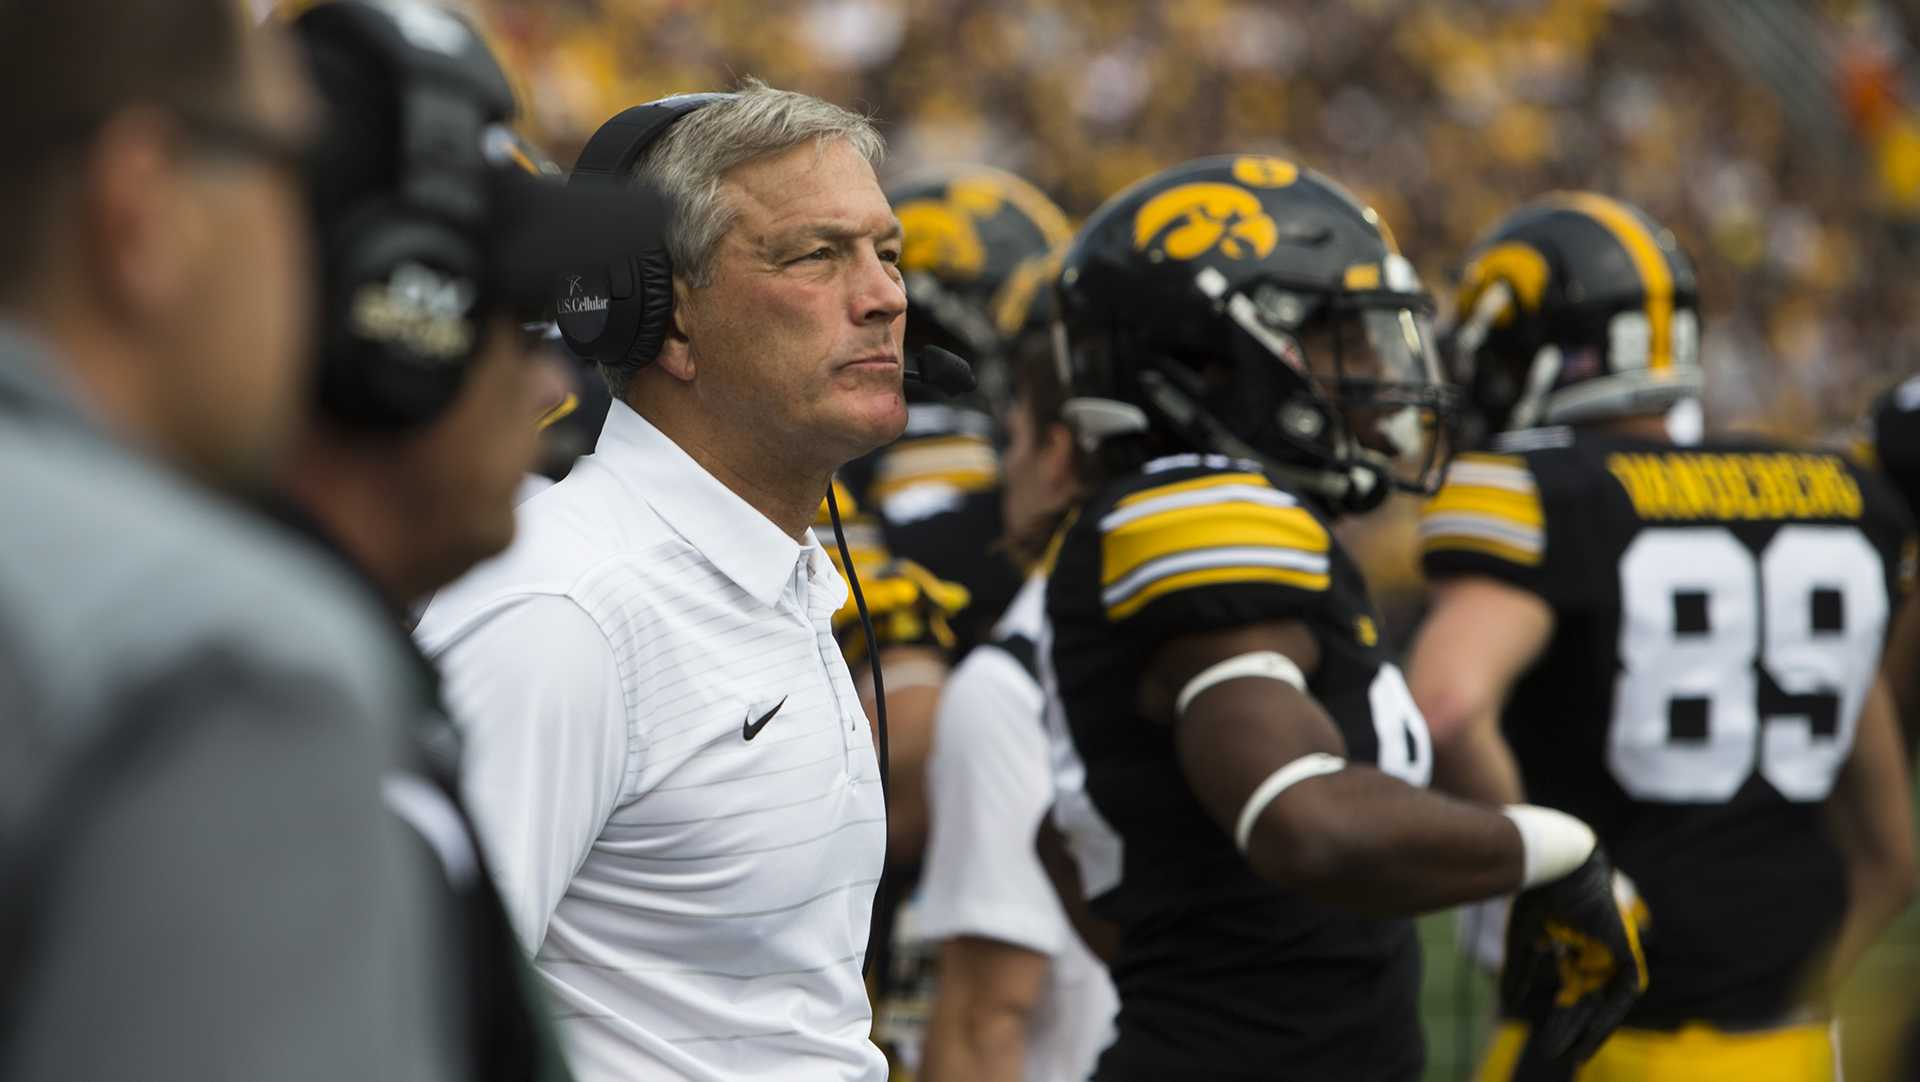 Iowa head coach Kirk Ferentz looks the field during an NCAA football game between Iowa and Wyoming in Kinnick Stadium on Saturday, Sept. 2, 2017. The Hawkeyes defeated Wyoming, 24-3. (Joseph Cress/The Daily Iowan)